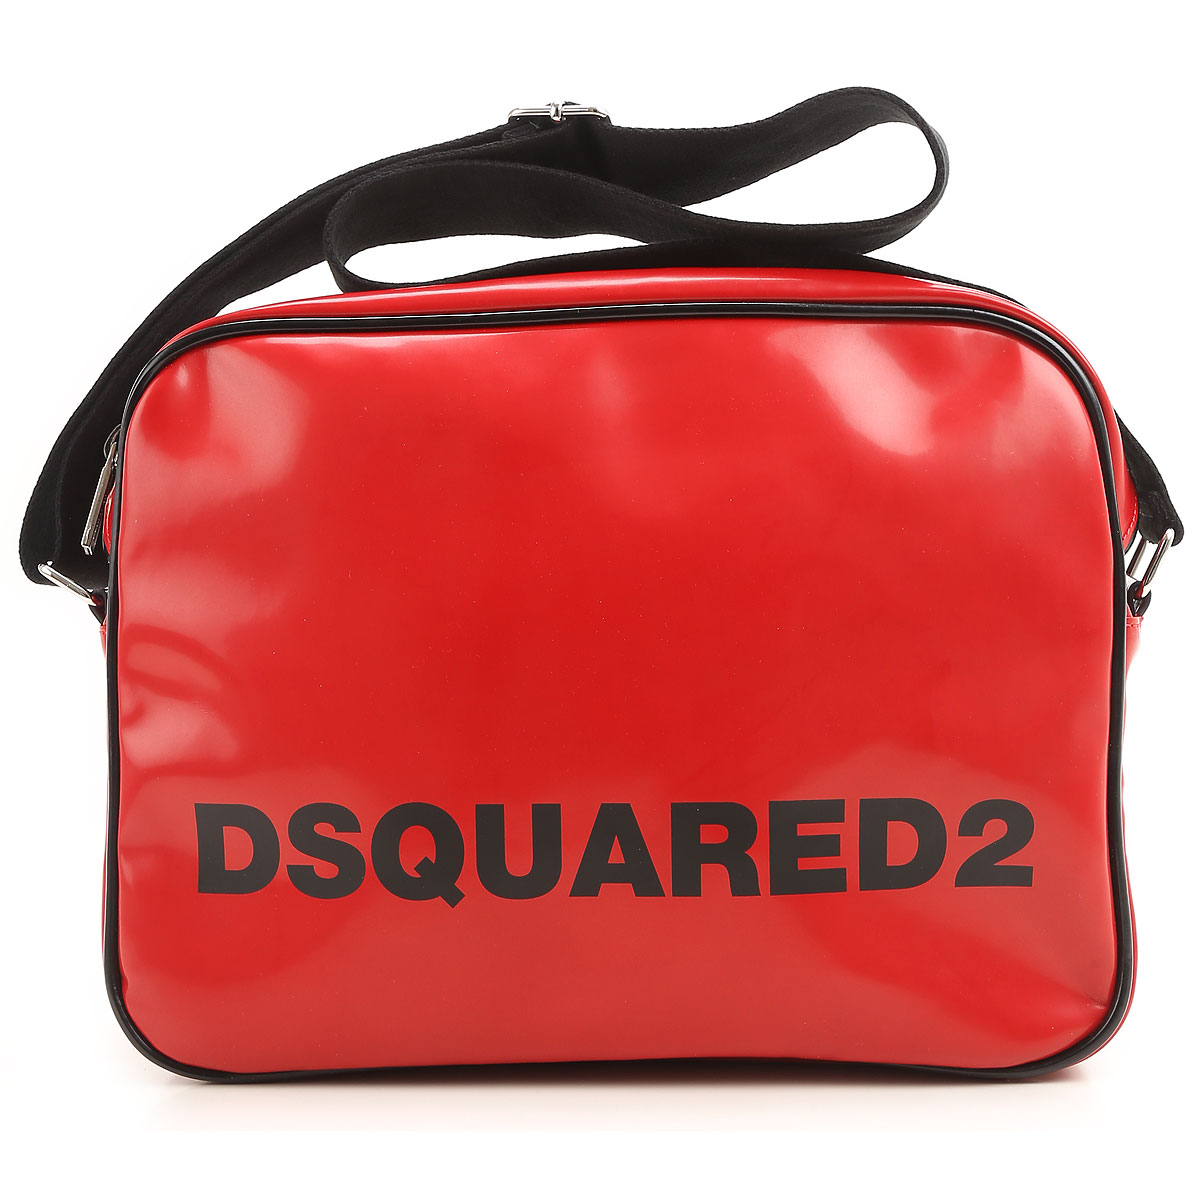 Image of Dsquared2 Briefcases On Sale in Outlet, Red, Leather, 2017